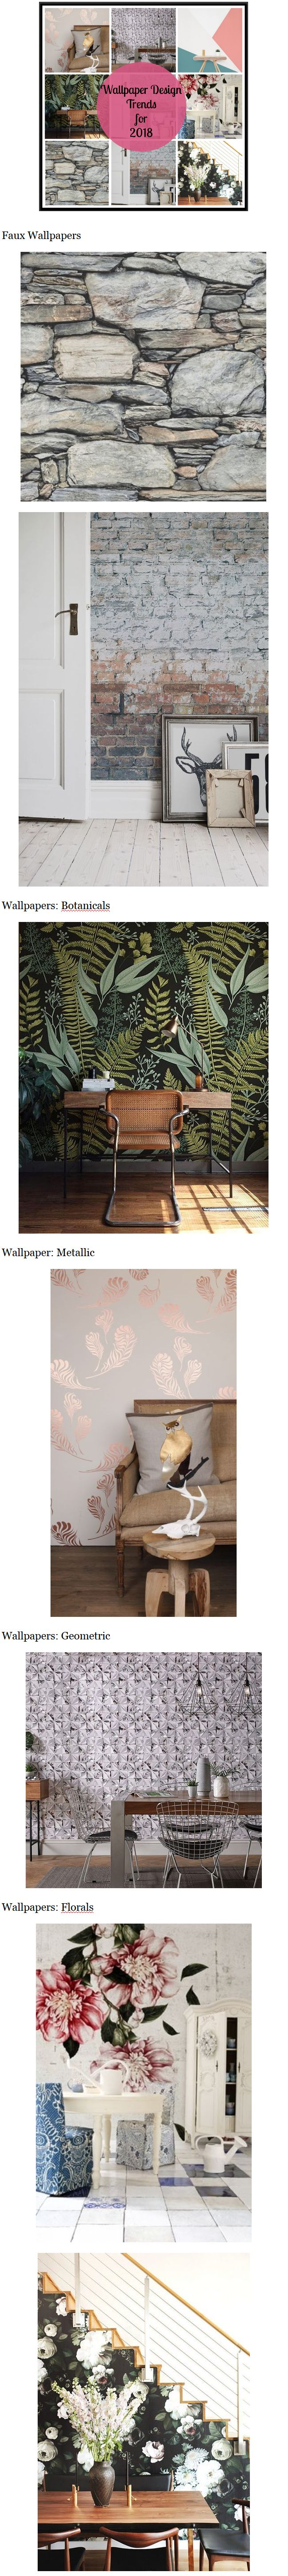 Wallpaper Trends Nairobi Kenya - Interior wall decor